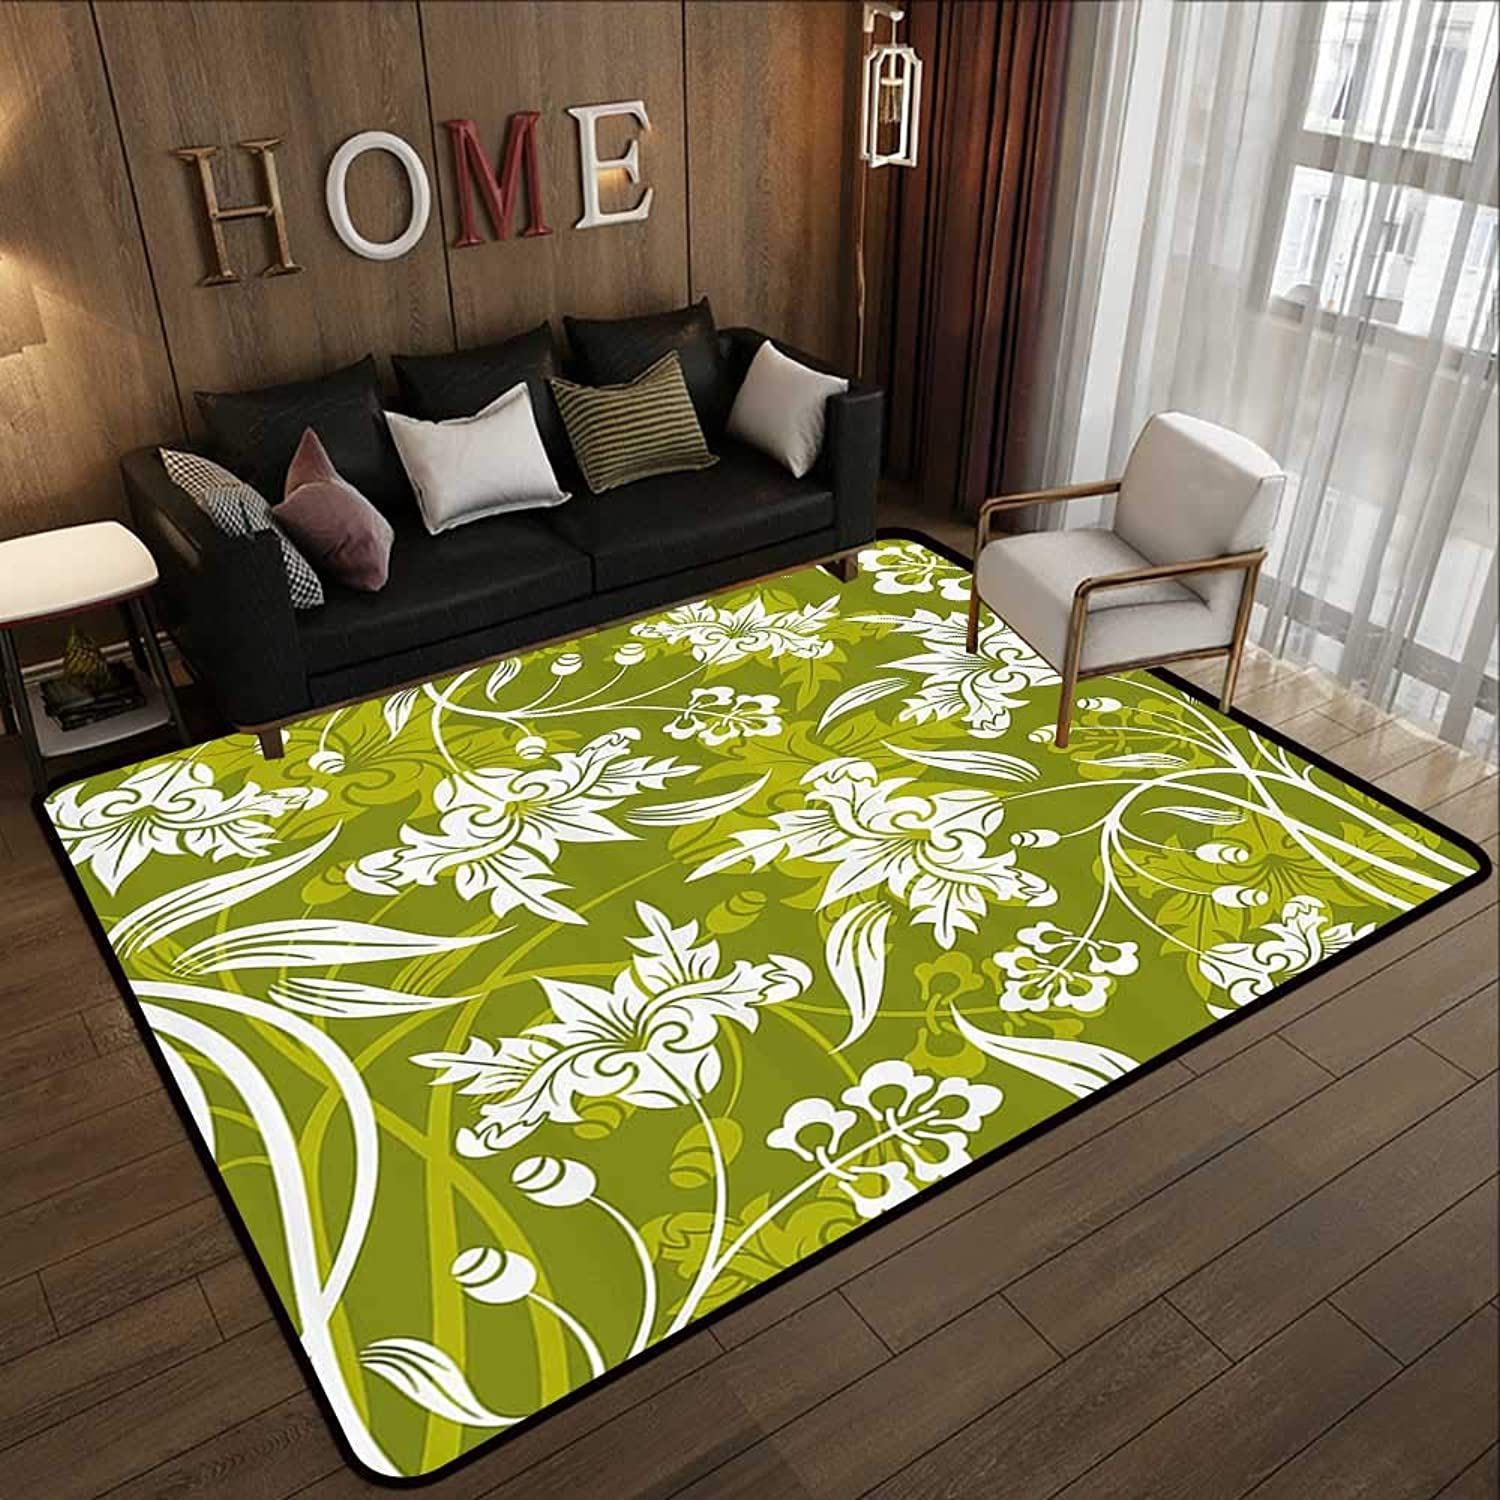 Multi-color Modern Area Rug,Floral,Flourishing Flower Pattern on Green Background Nature Illustration,Olive and Light Green White 47 x 59  Non Slip Door Mat for Front Door